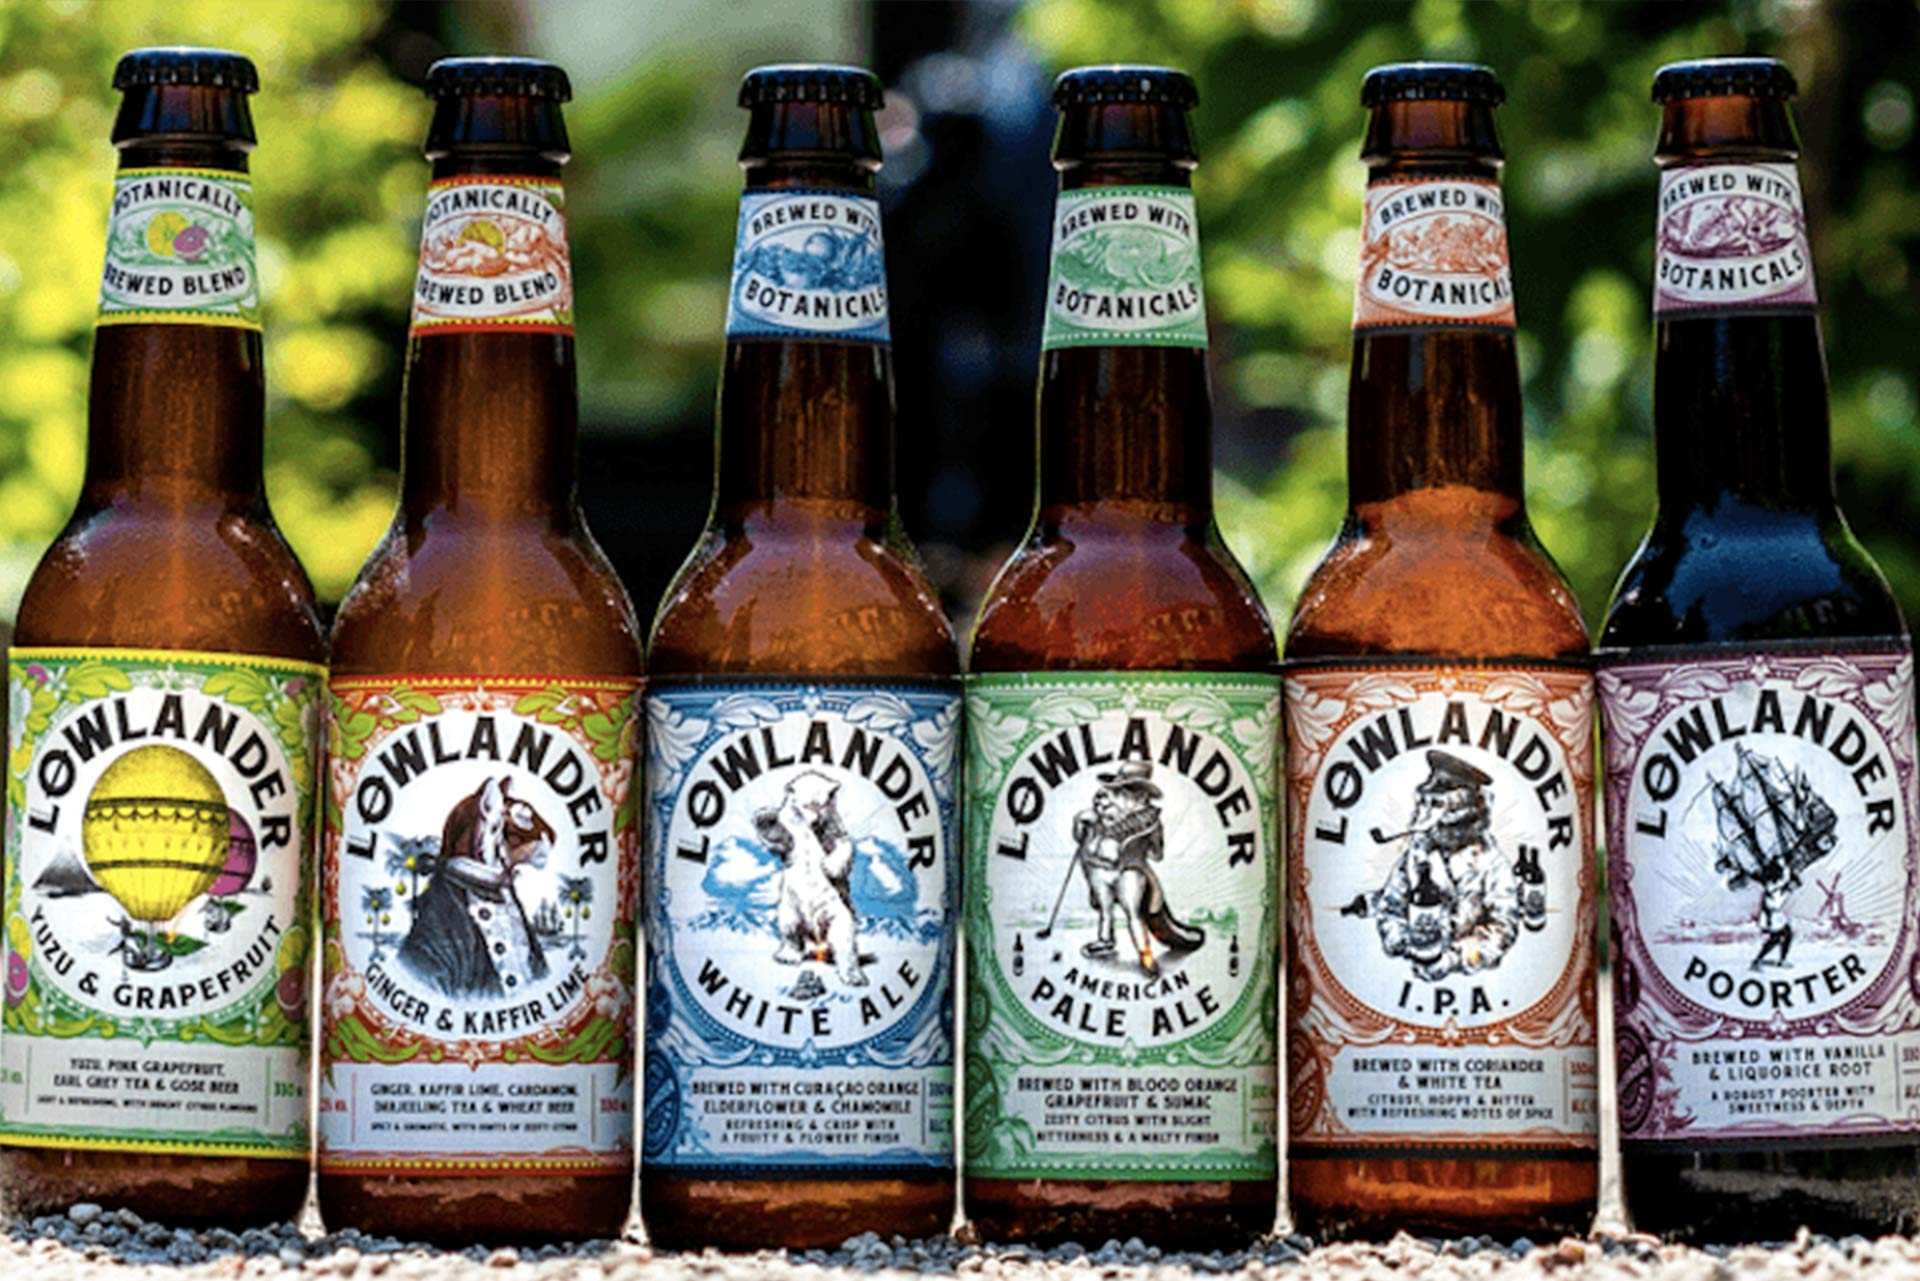 Lowlander Botanical Beer - Change of labels